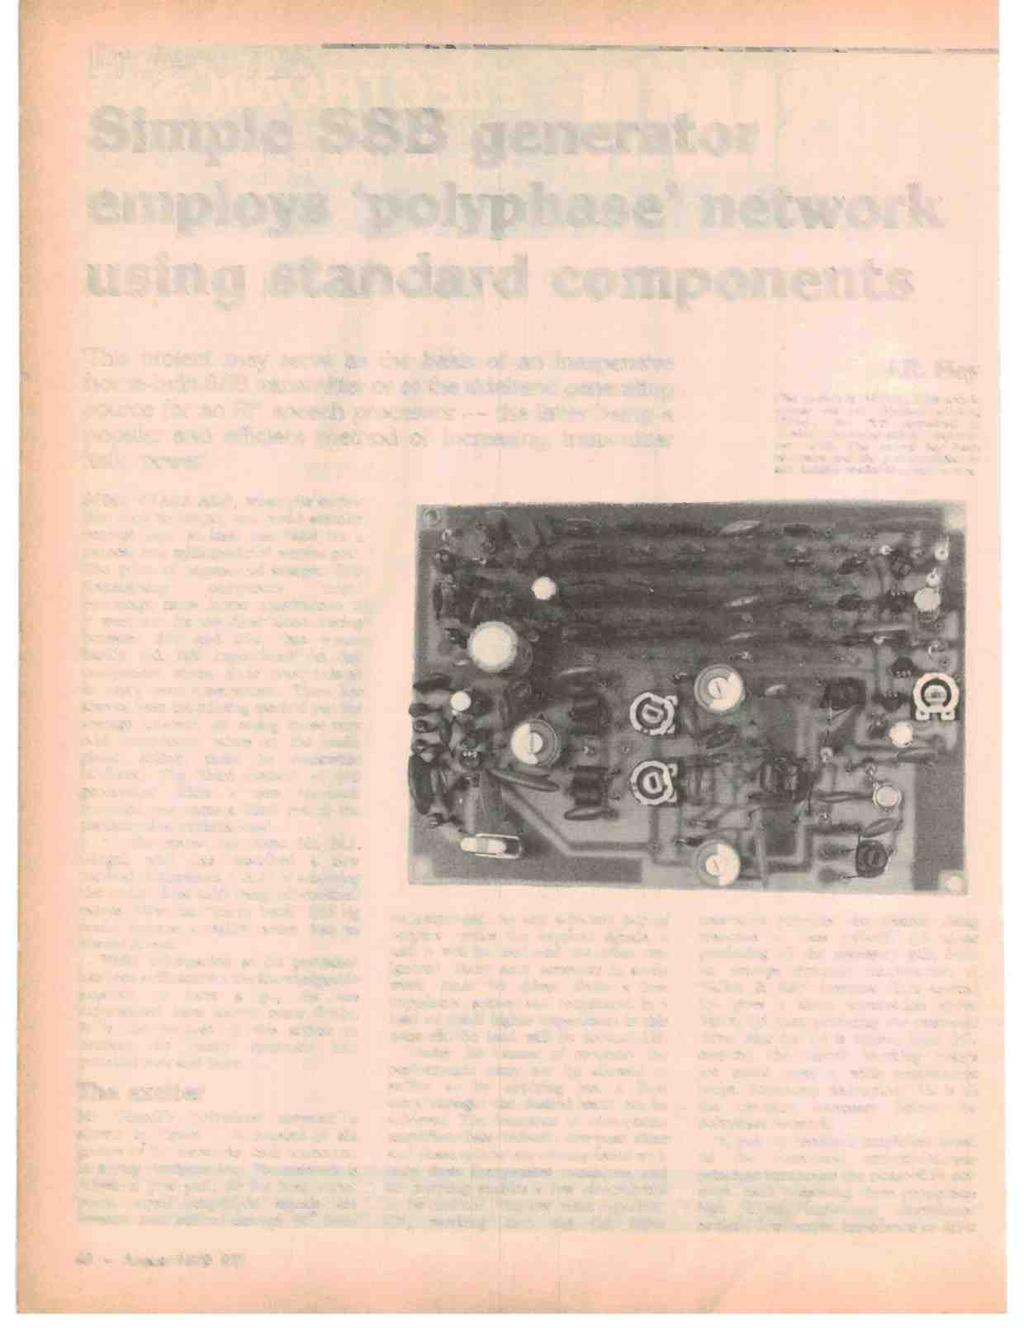 PTcD:eic 725 Simple SSB generator employs `polyphase' network using standard components This project may serve as the basis of an inexpensive home -built SSB transmitter or as the sideband generating